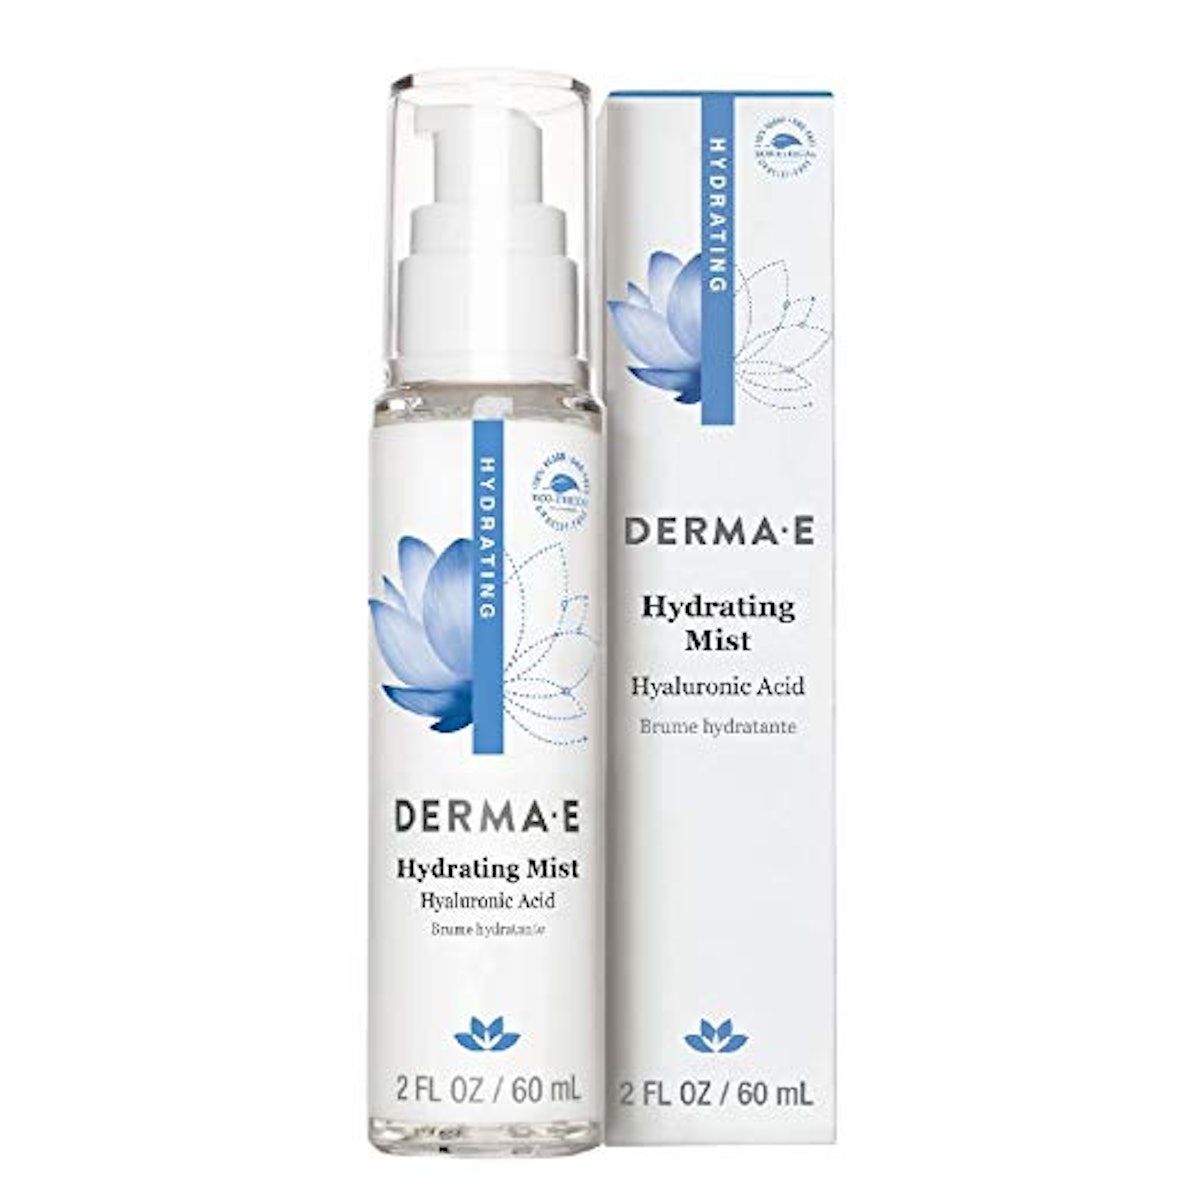 Hydrating Mist With Hyaluronic Acid